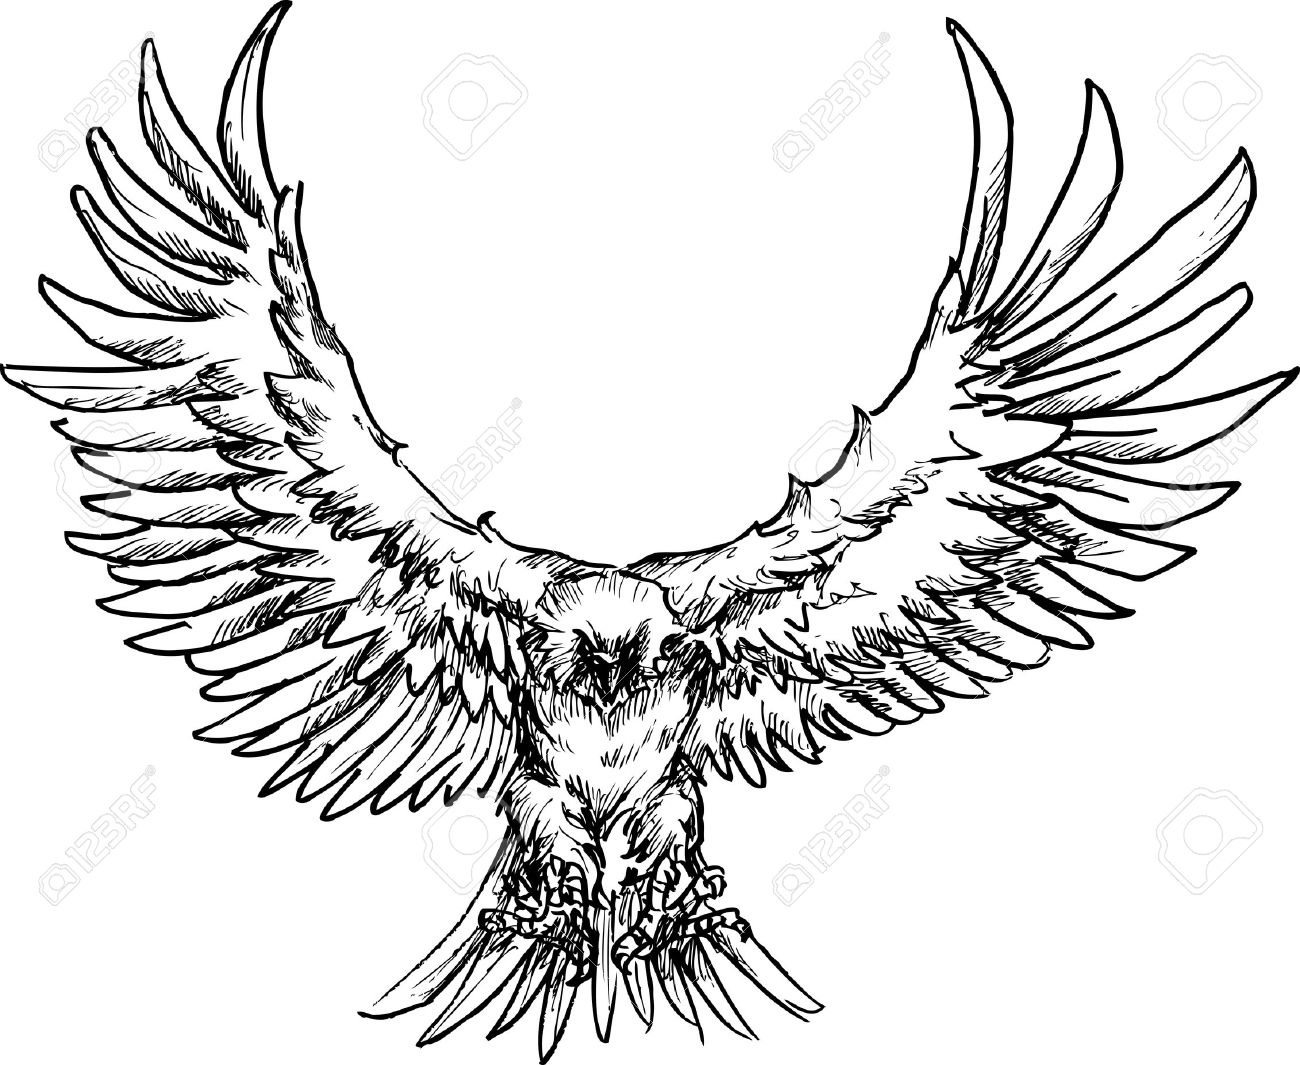 Eagle Tattoo Line Drawing : Eagle tattoo drawing at getdrawings free for